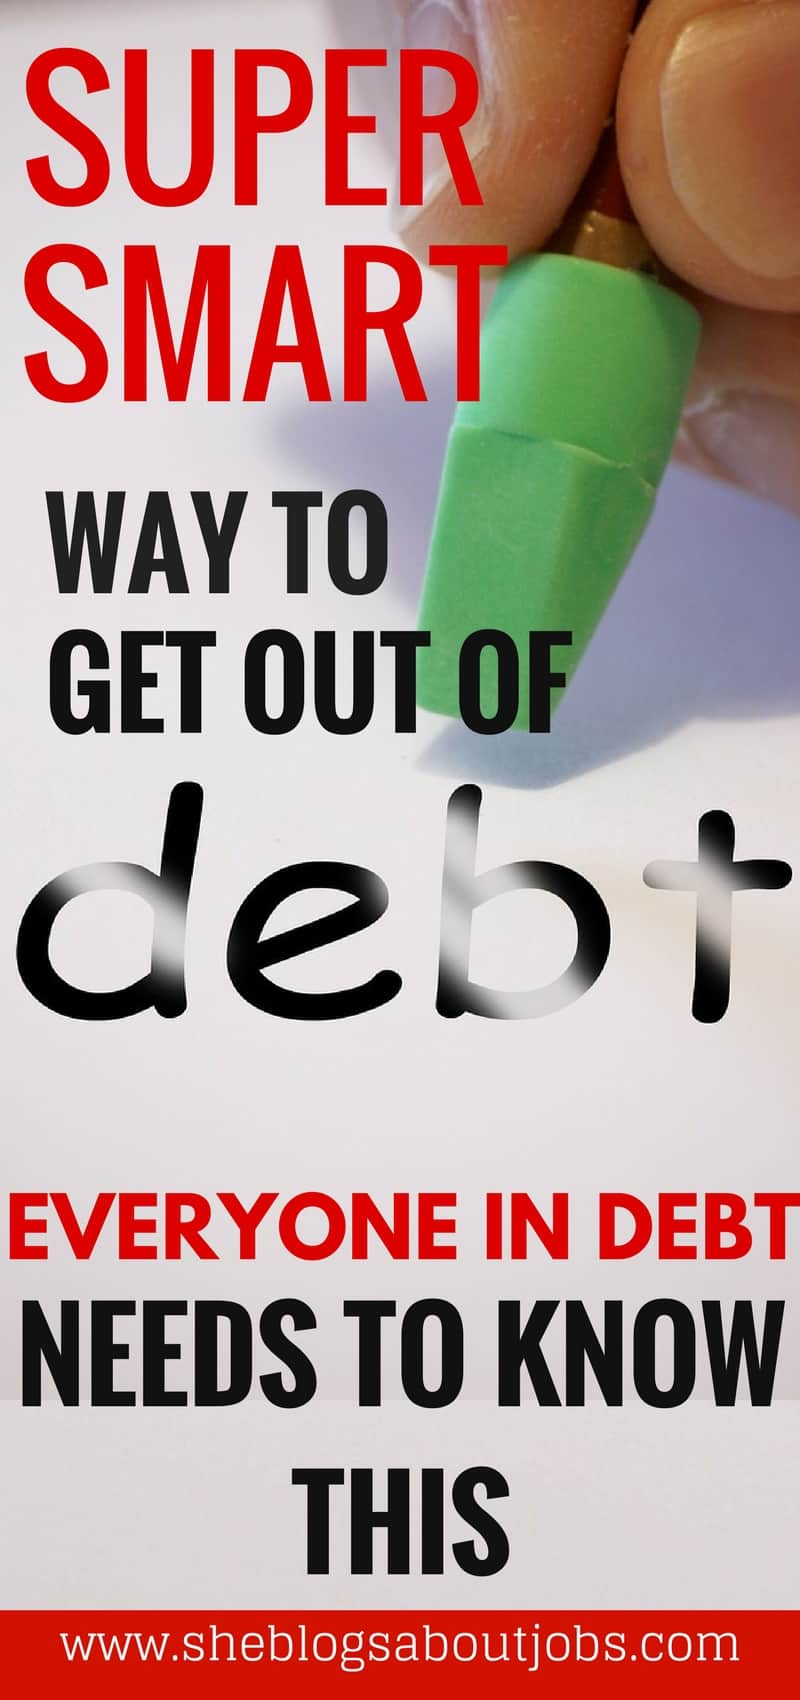 Click this image to learn of about an awesome way to get out of debt and finally start living the life you've always dreamed of.